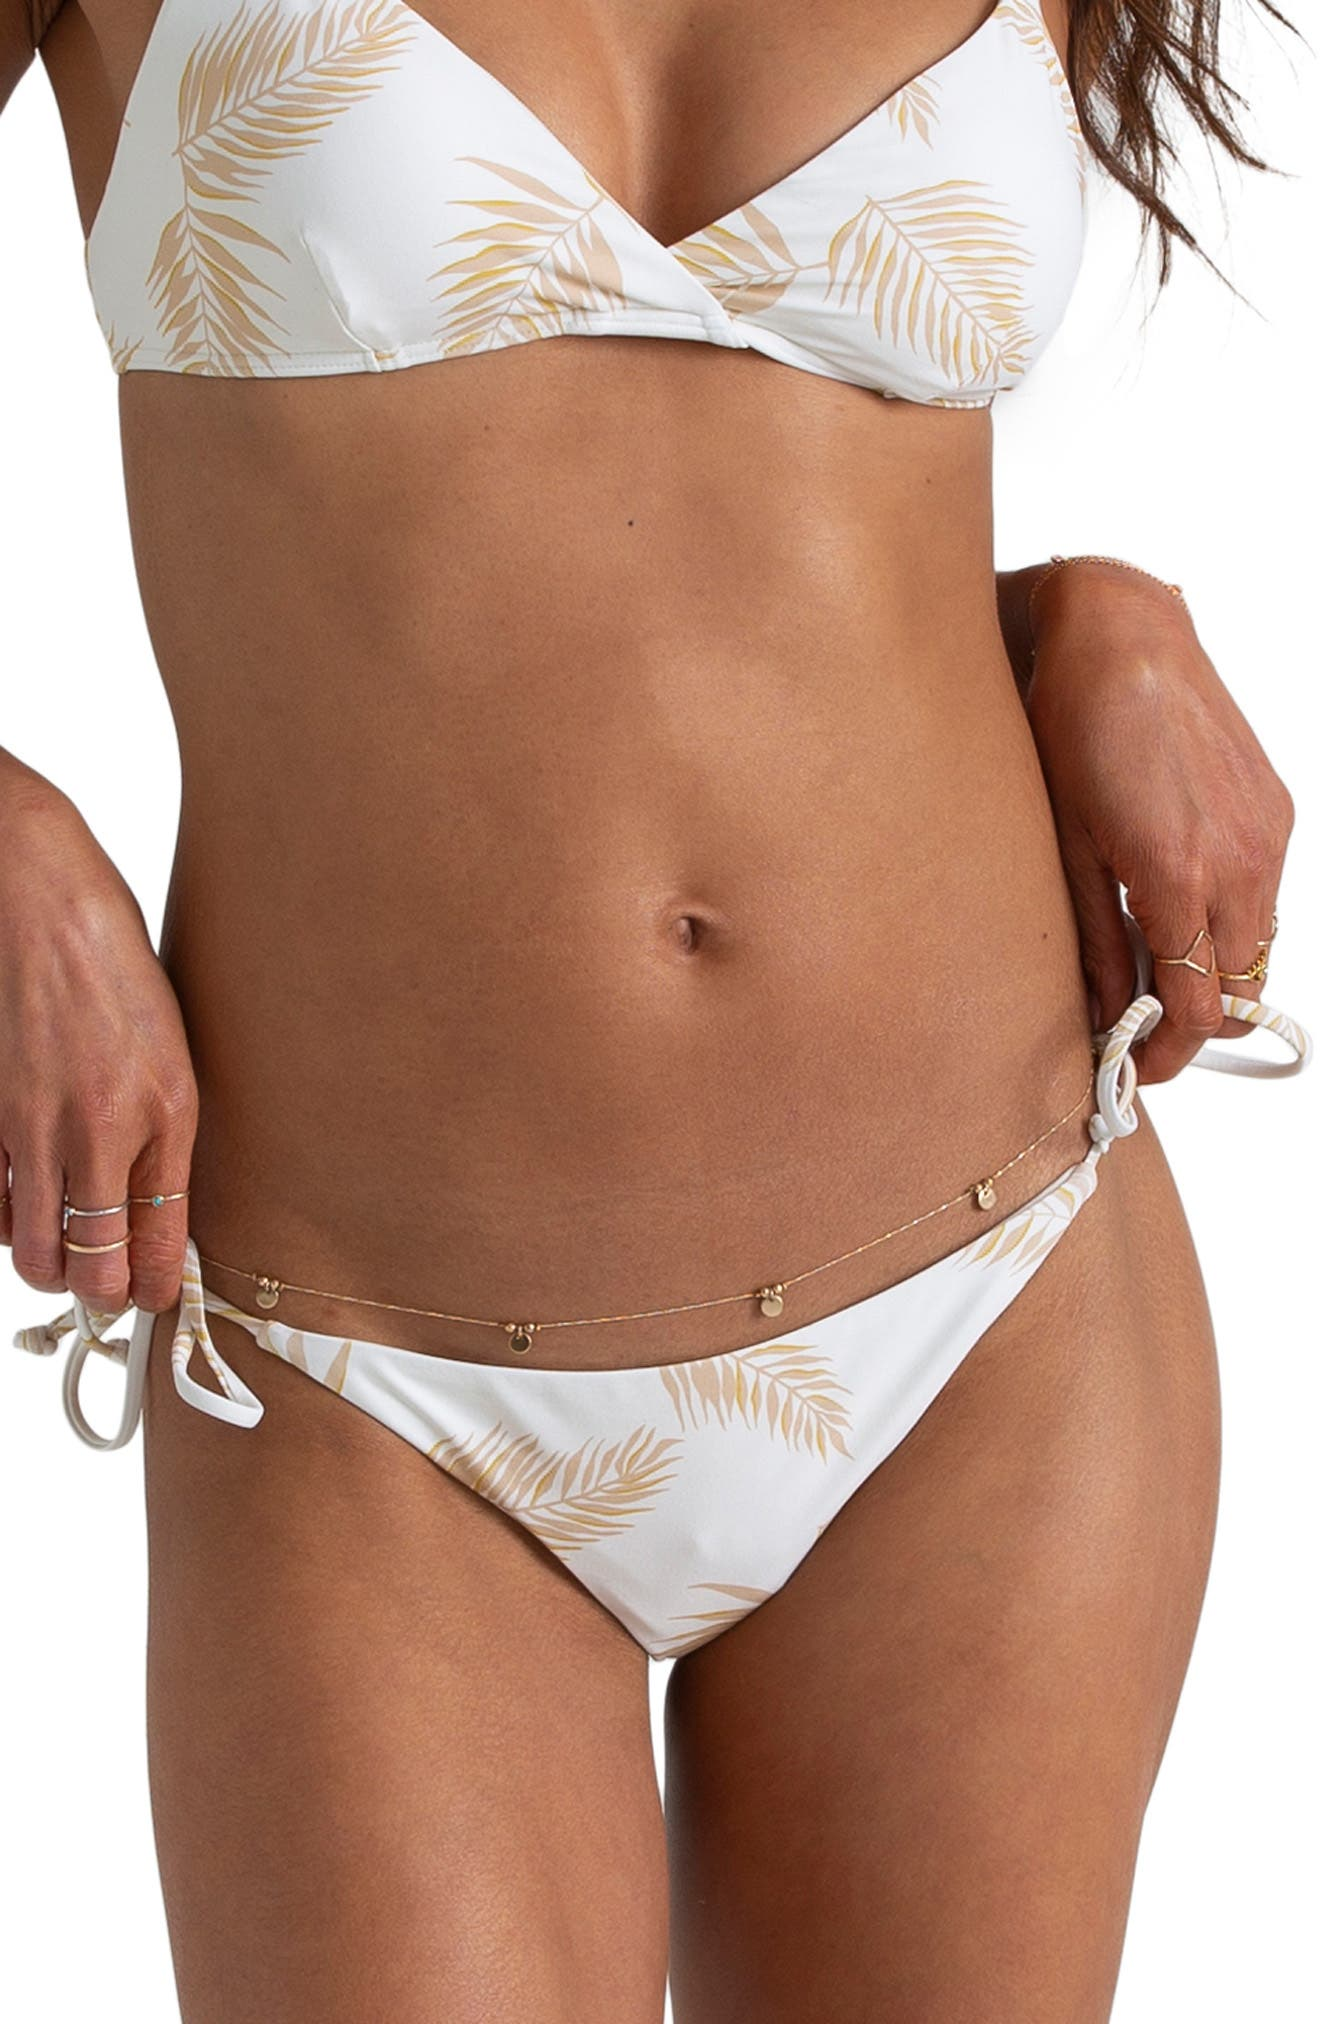 Billabong X Sincerely Jules Dos Palmas Bikini Bottoms, White